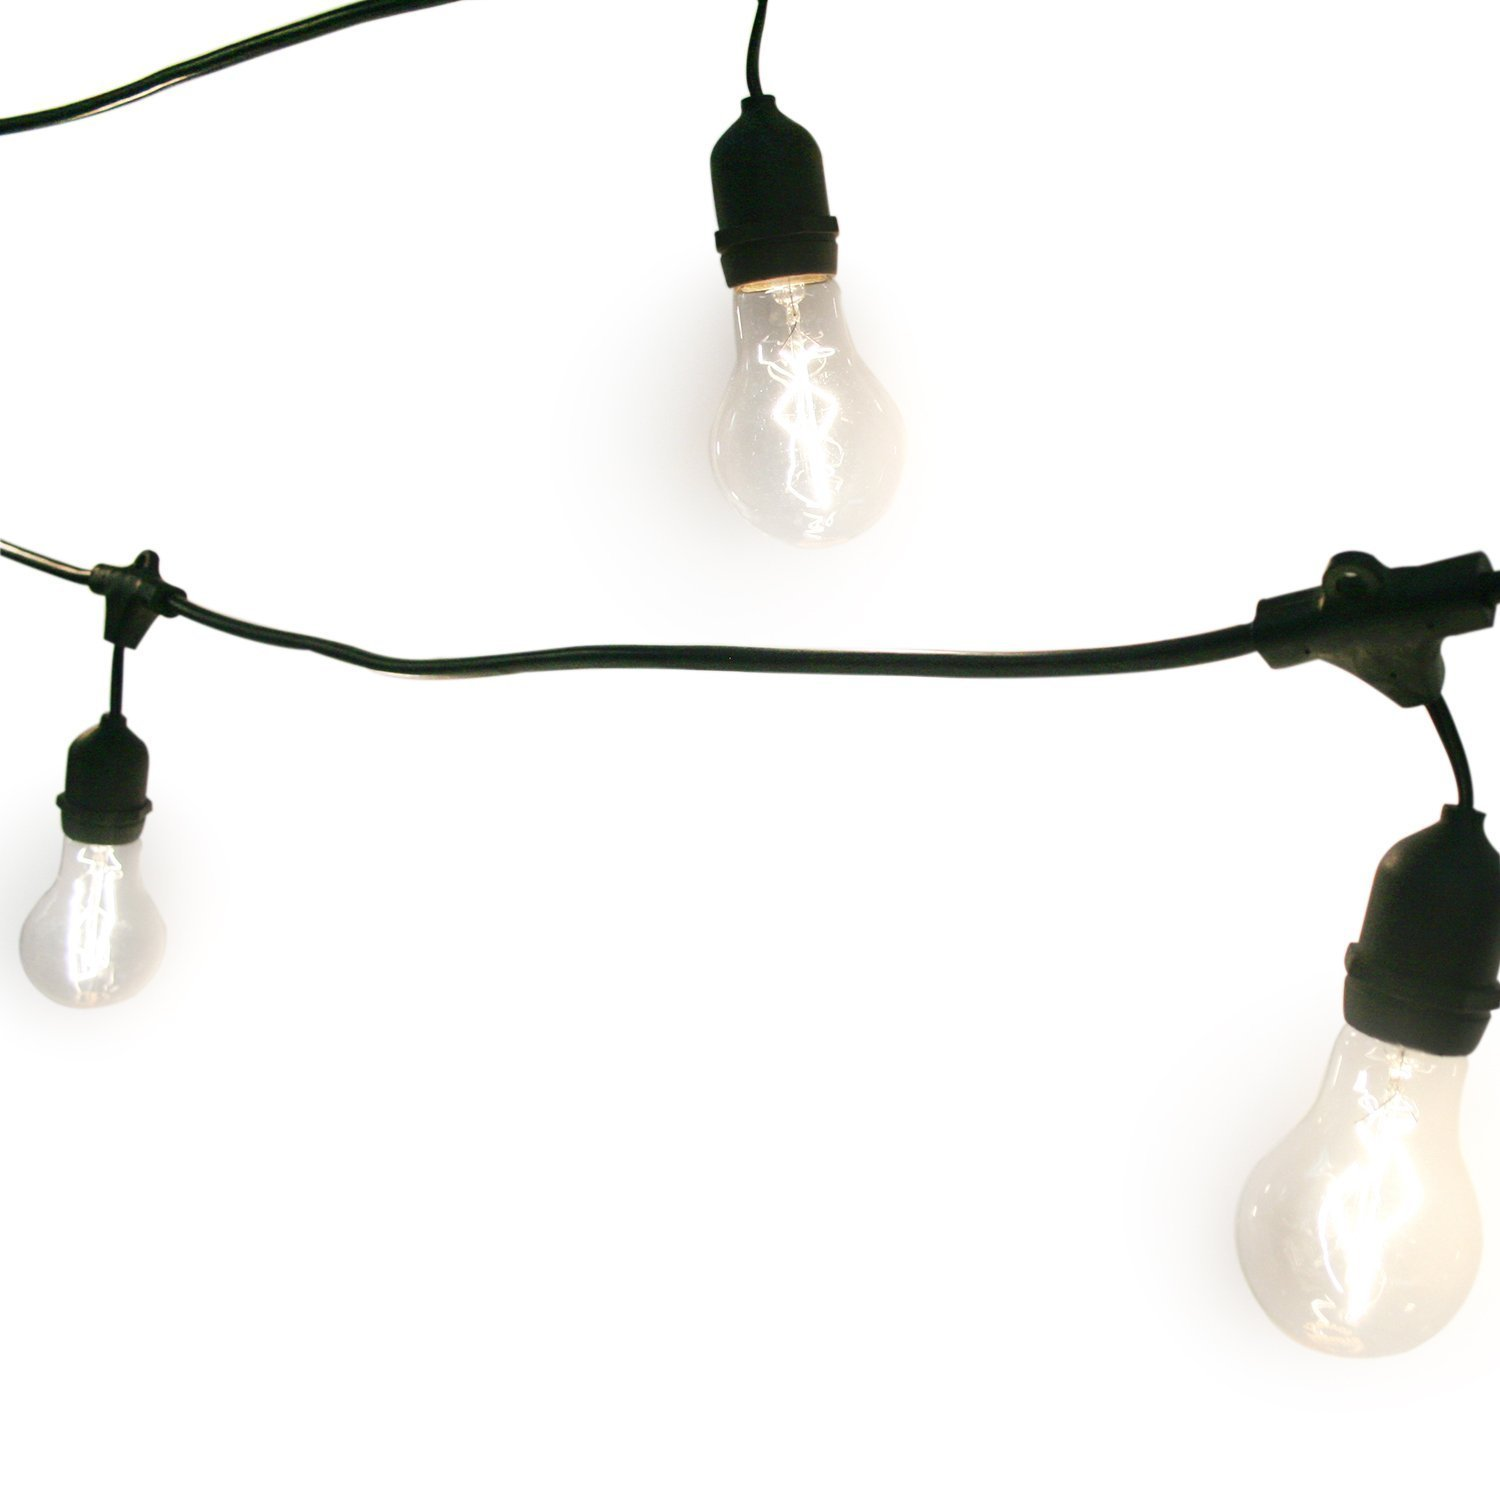 48 ft outdoor string light with 15 edison style bulbs connectable waterproof 852678023771 ebay. Black Bedroom Furniture Sets. Home Design Ideas